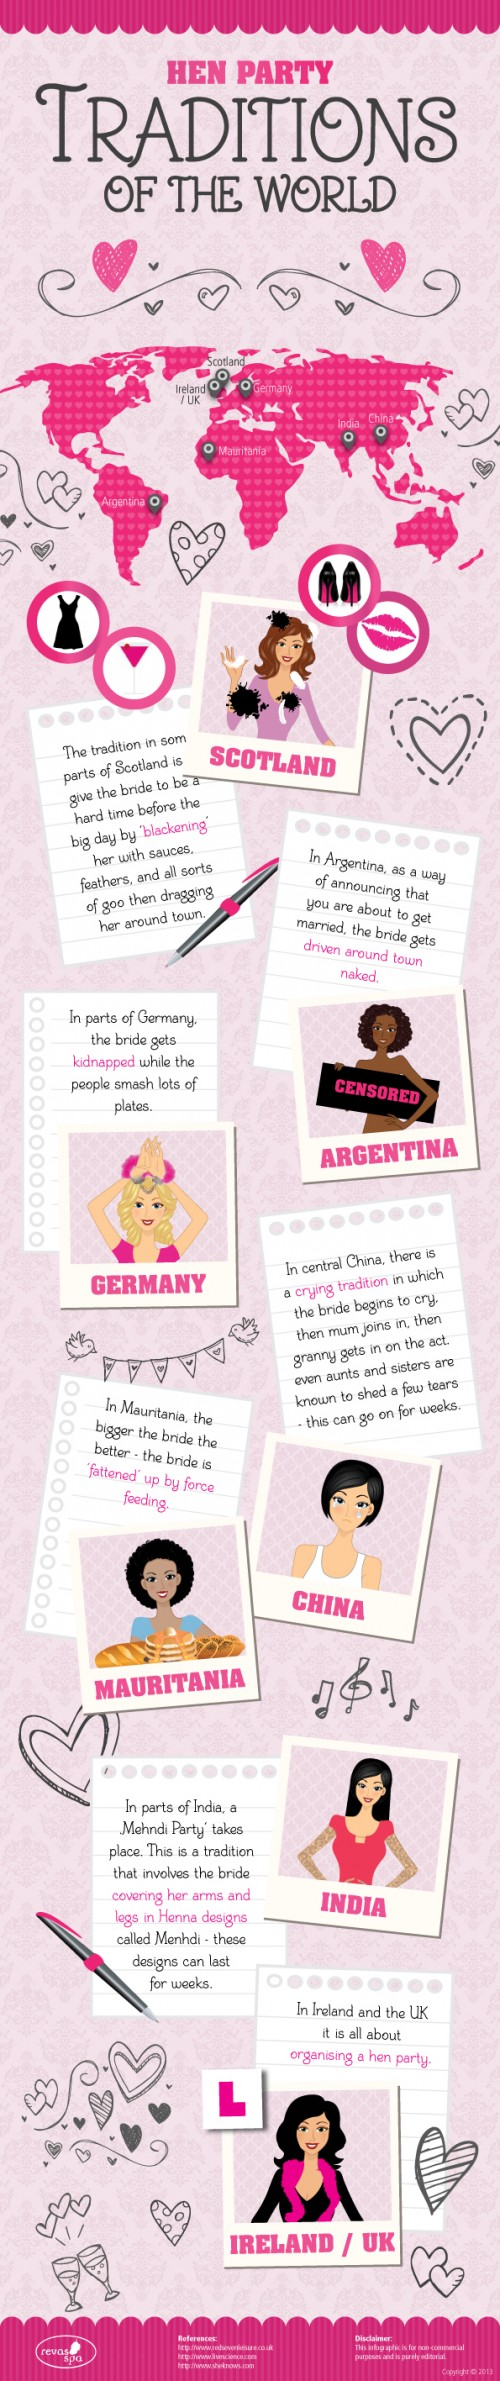 Hen Party Ideas You Don't Want To Miss